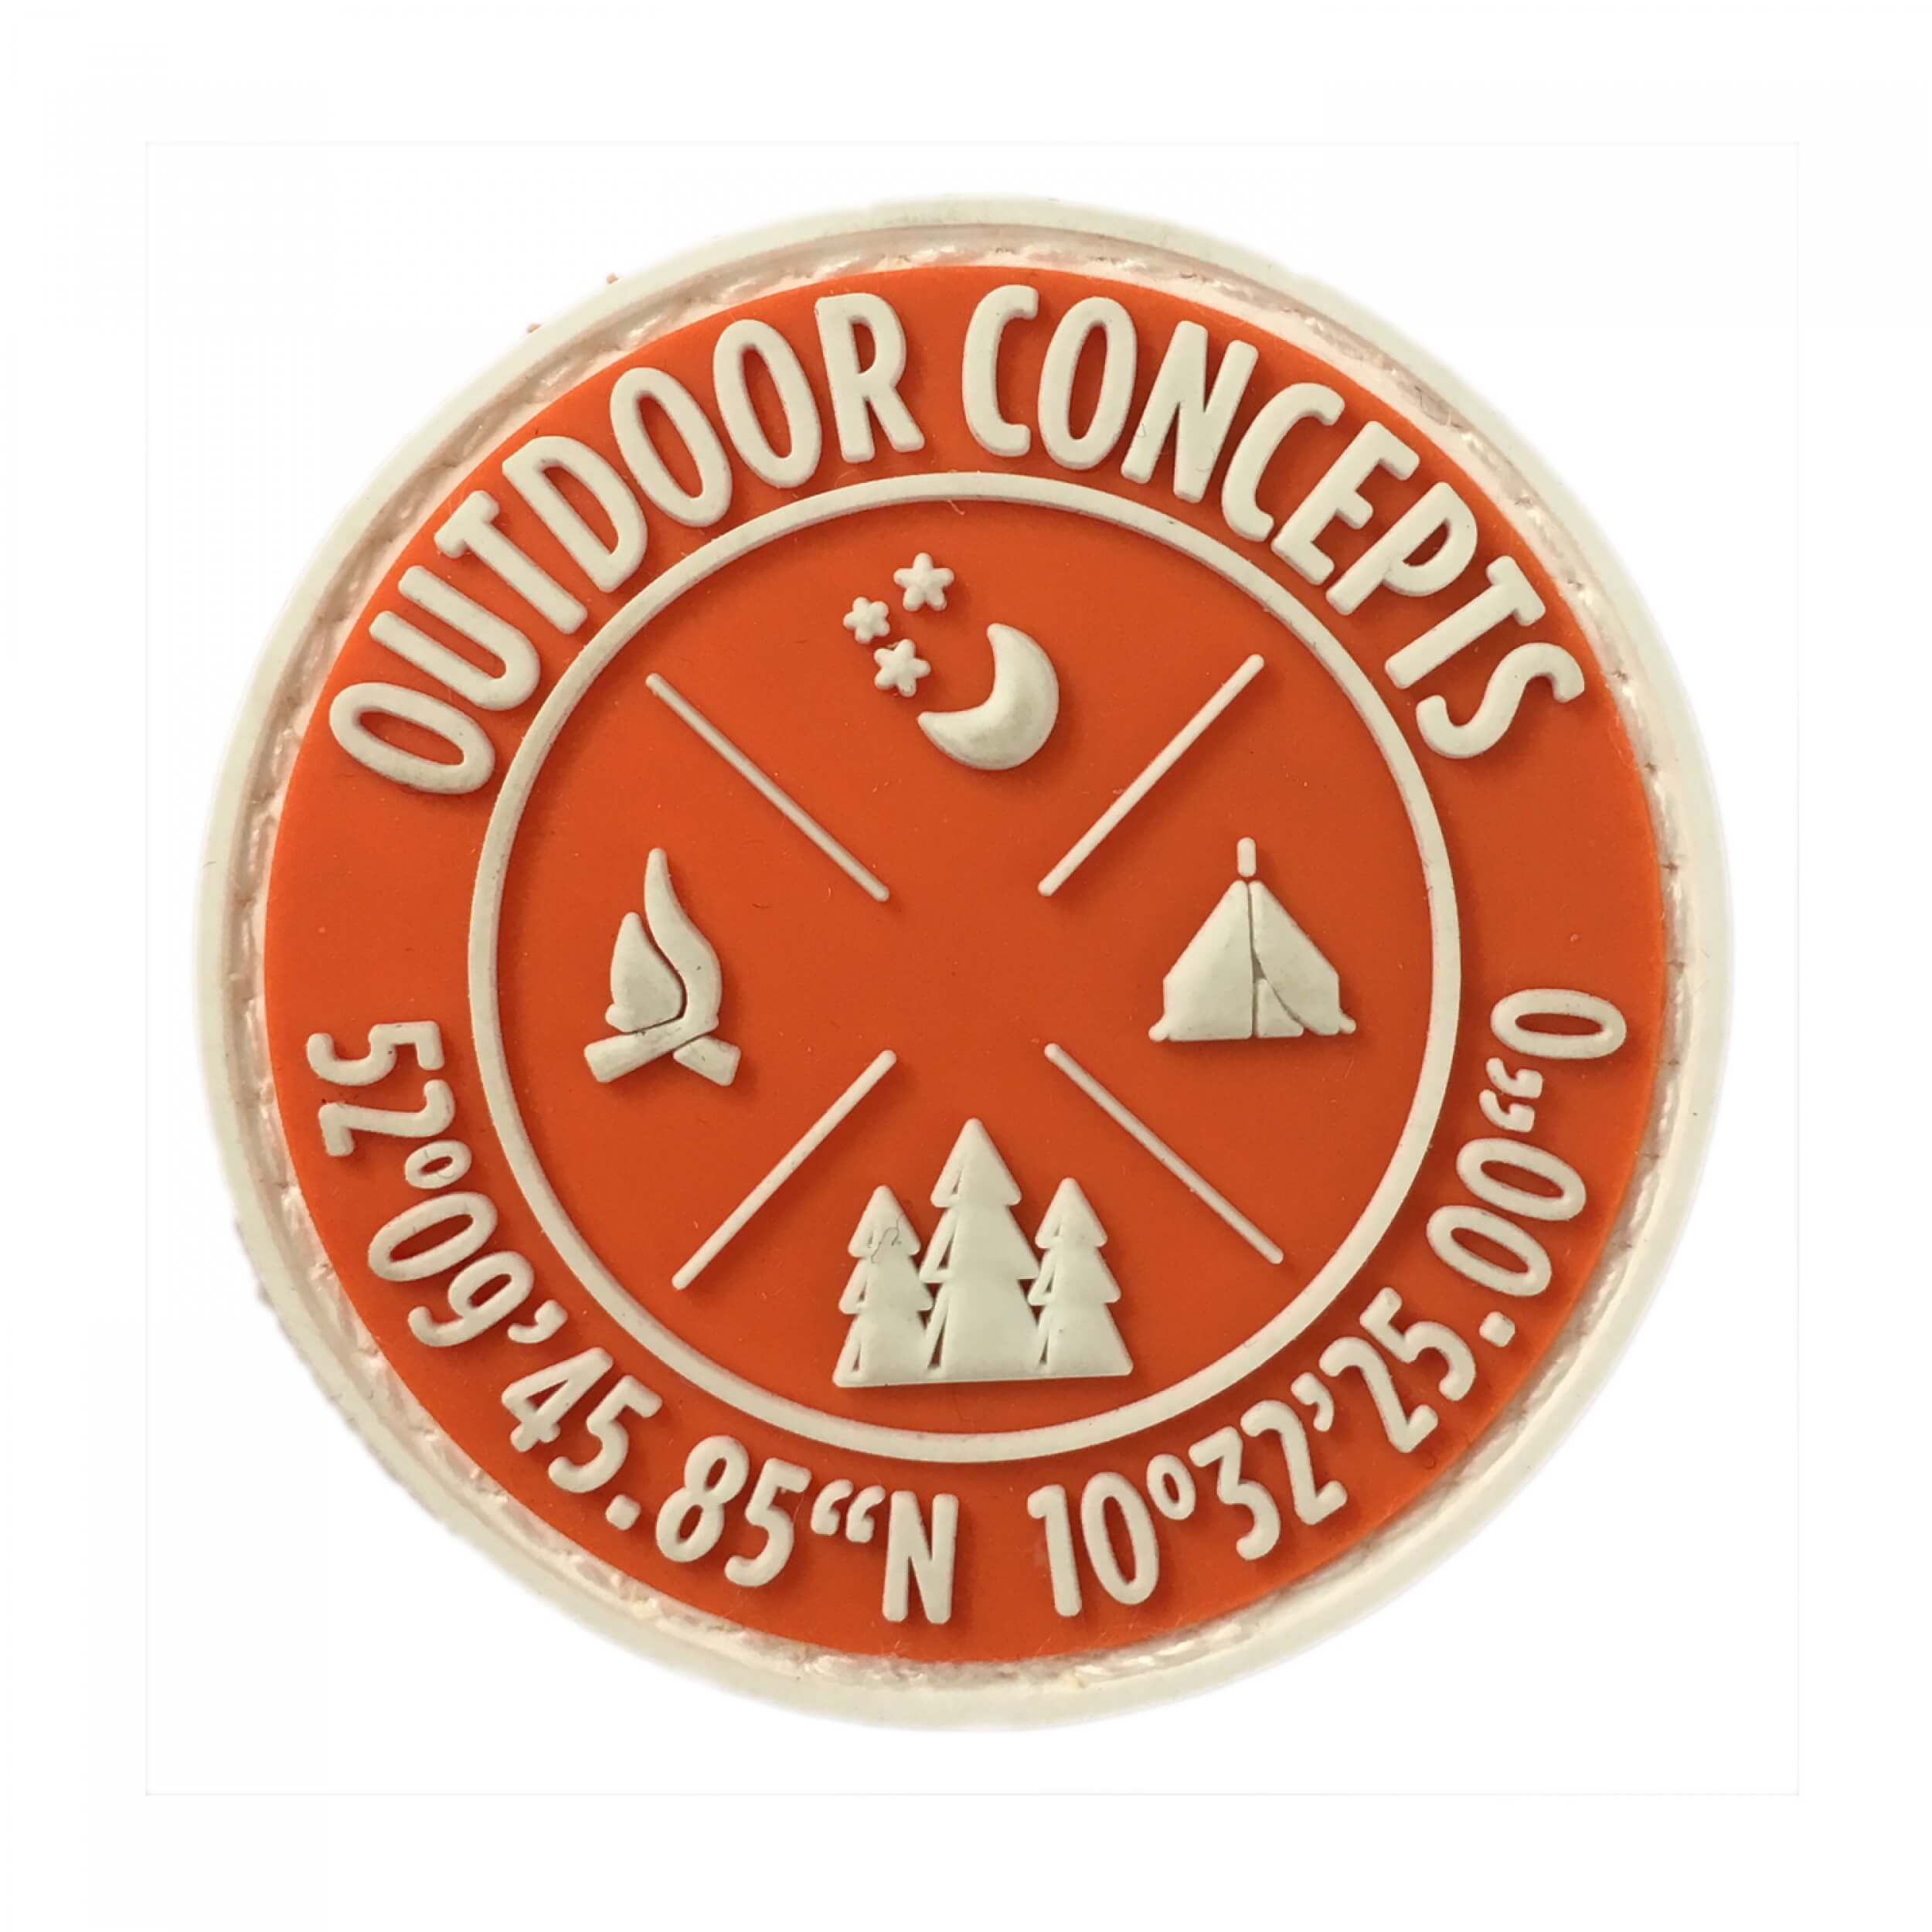 Outdoor Concepts Rubber Patch 45mm